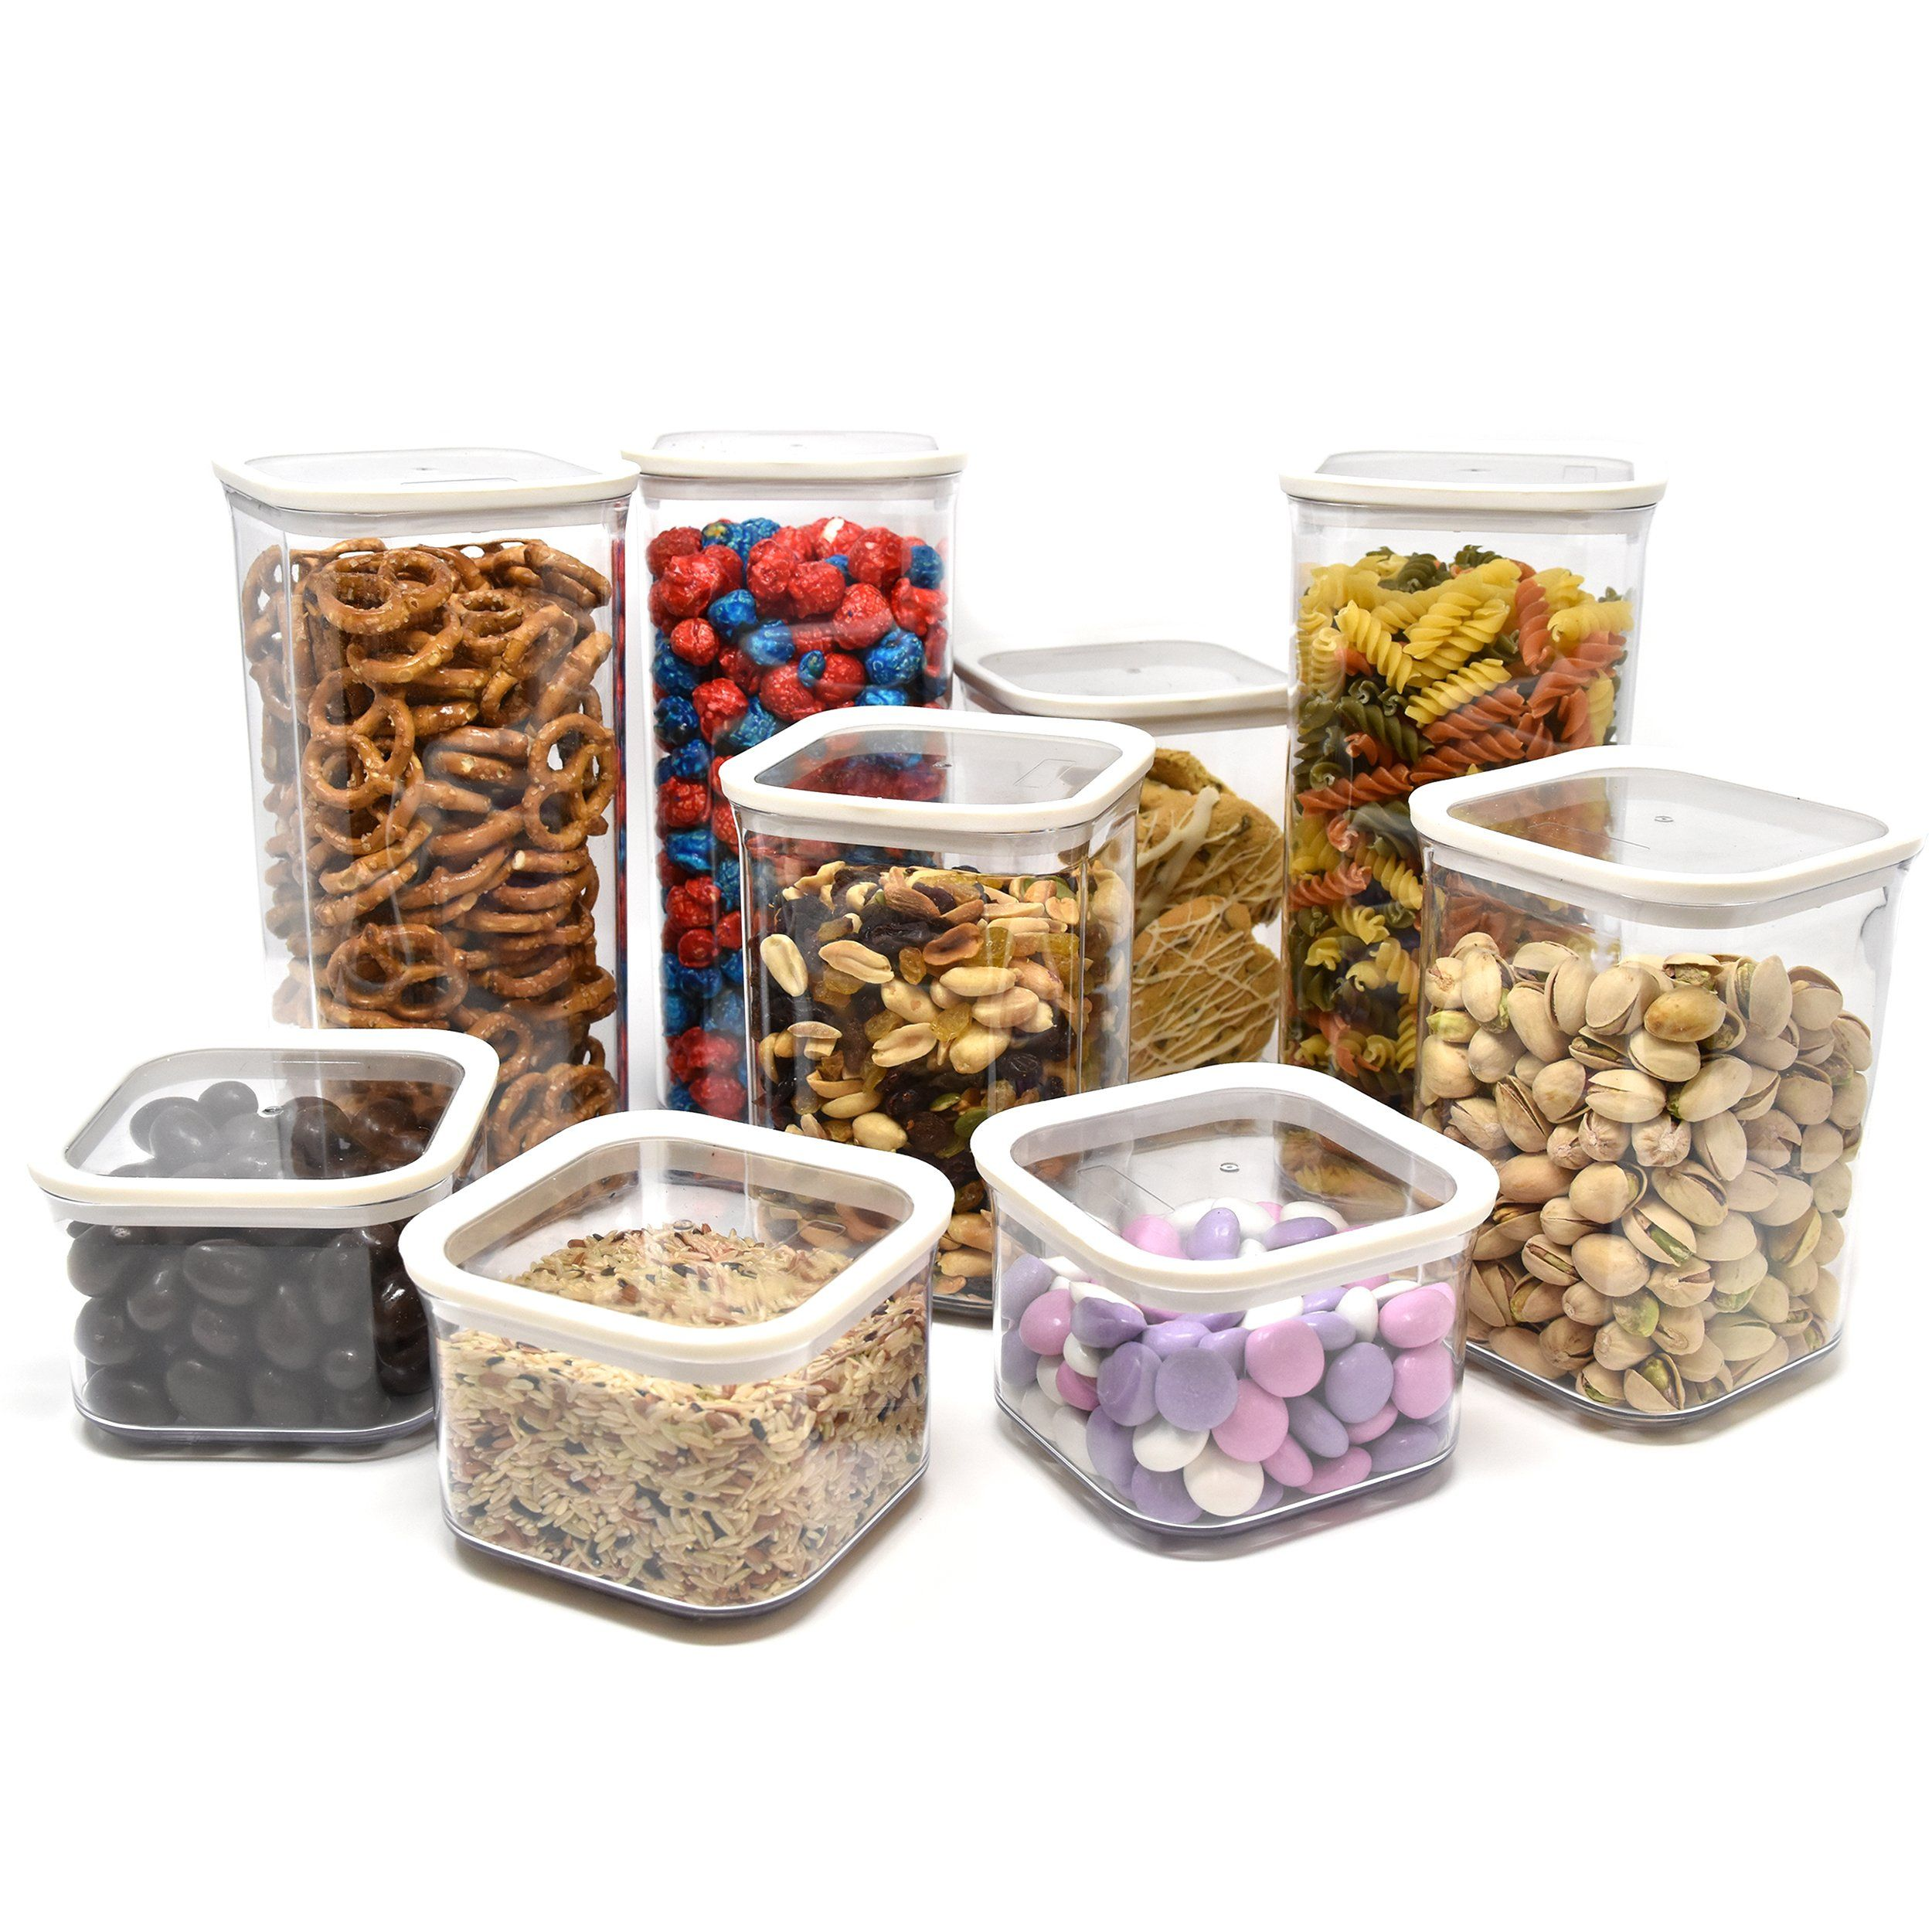 Airtight Dry Food Storage Container Set Food Saver Clear Plastic Airtight Containers And Lids Stackable Space Saver Wi Dry Food Storage Food Saver Food Storage